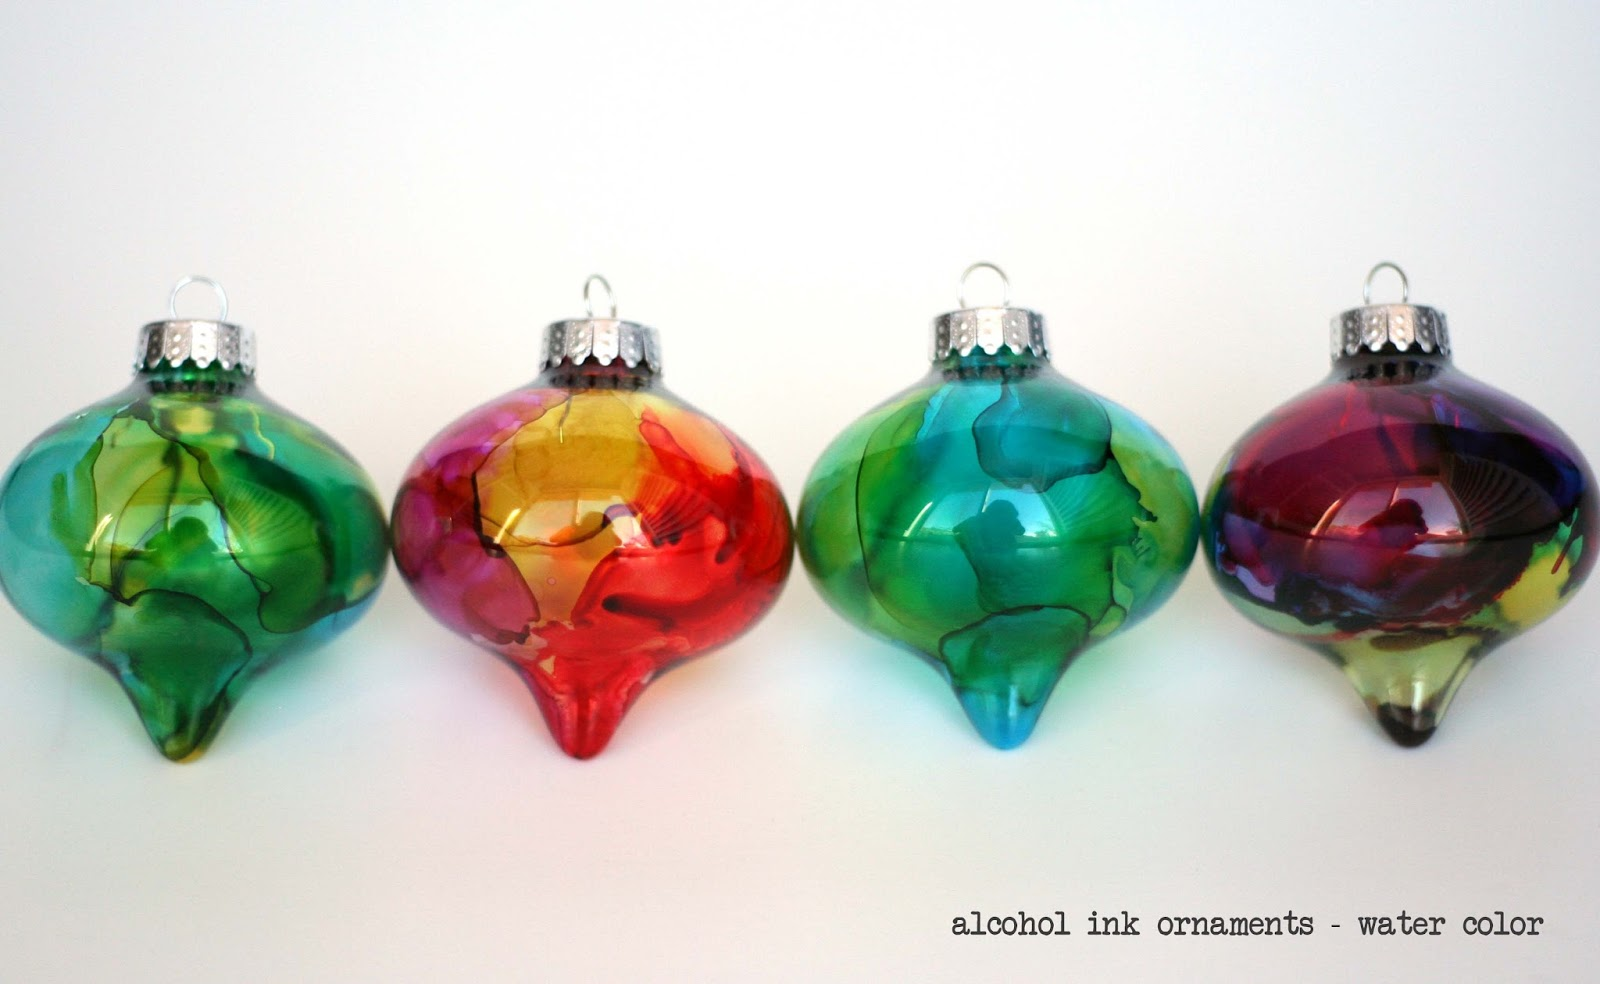 Homemade water color alcohol ink ornaments handmade ornaments no